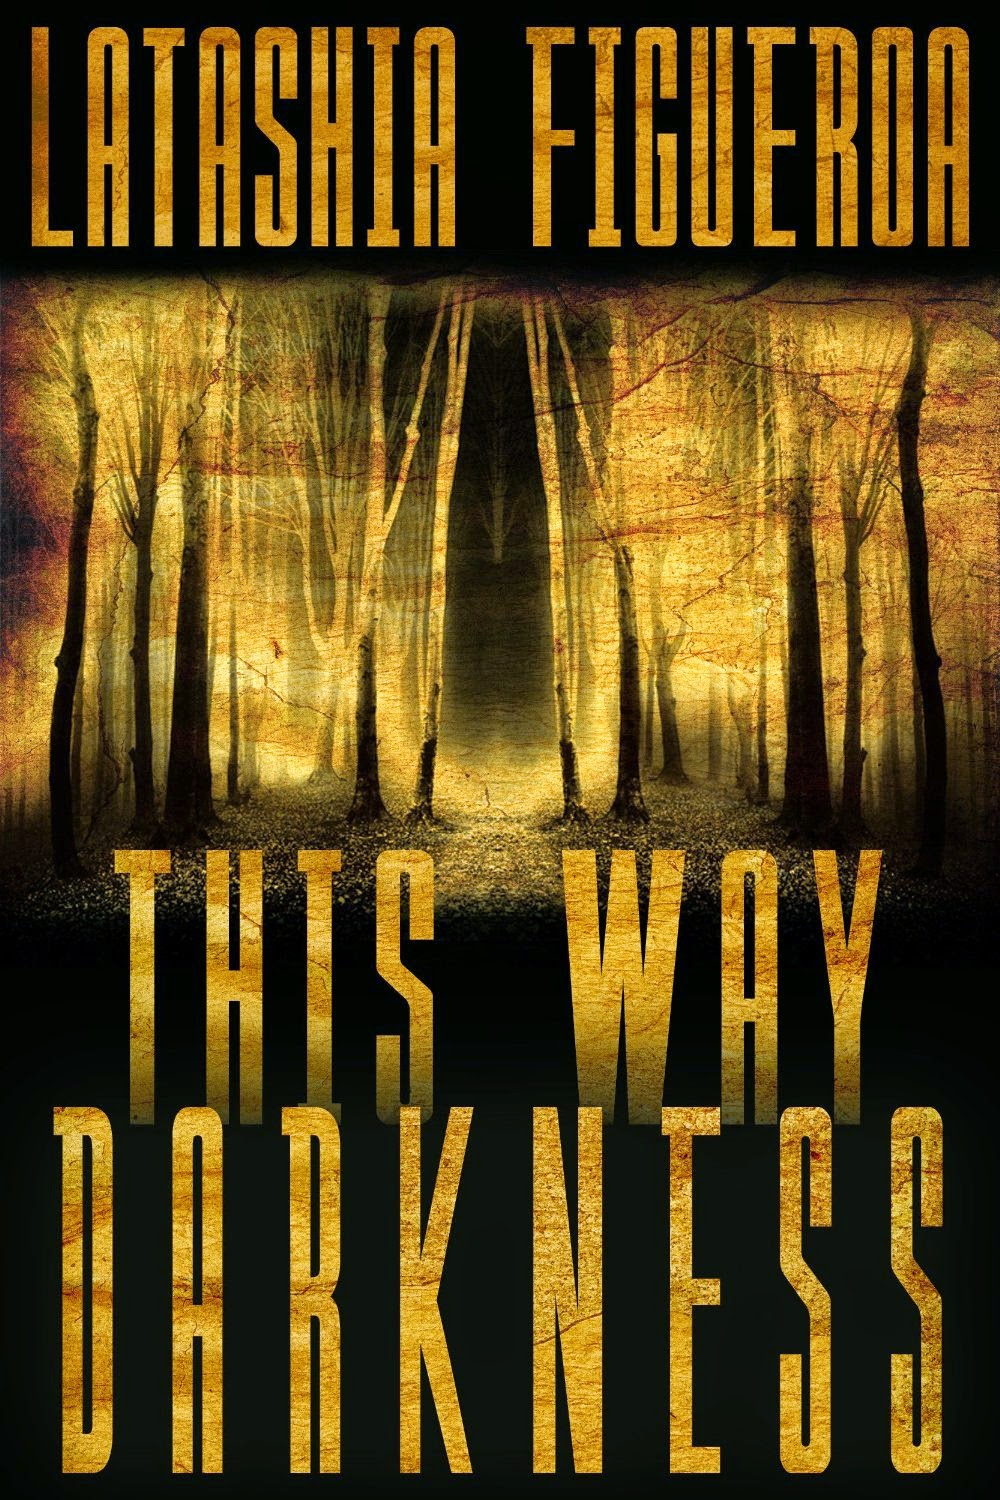 http://www.amazon.com/This-Way-Darkness-Three-Terror-ebook/dp/B00KFLGH5Q/ref=asap_B00KGNBN3Y_1_1?s=books&ie=UTF8&qid=1413811645&sr=1-1